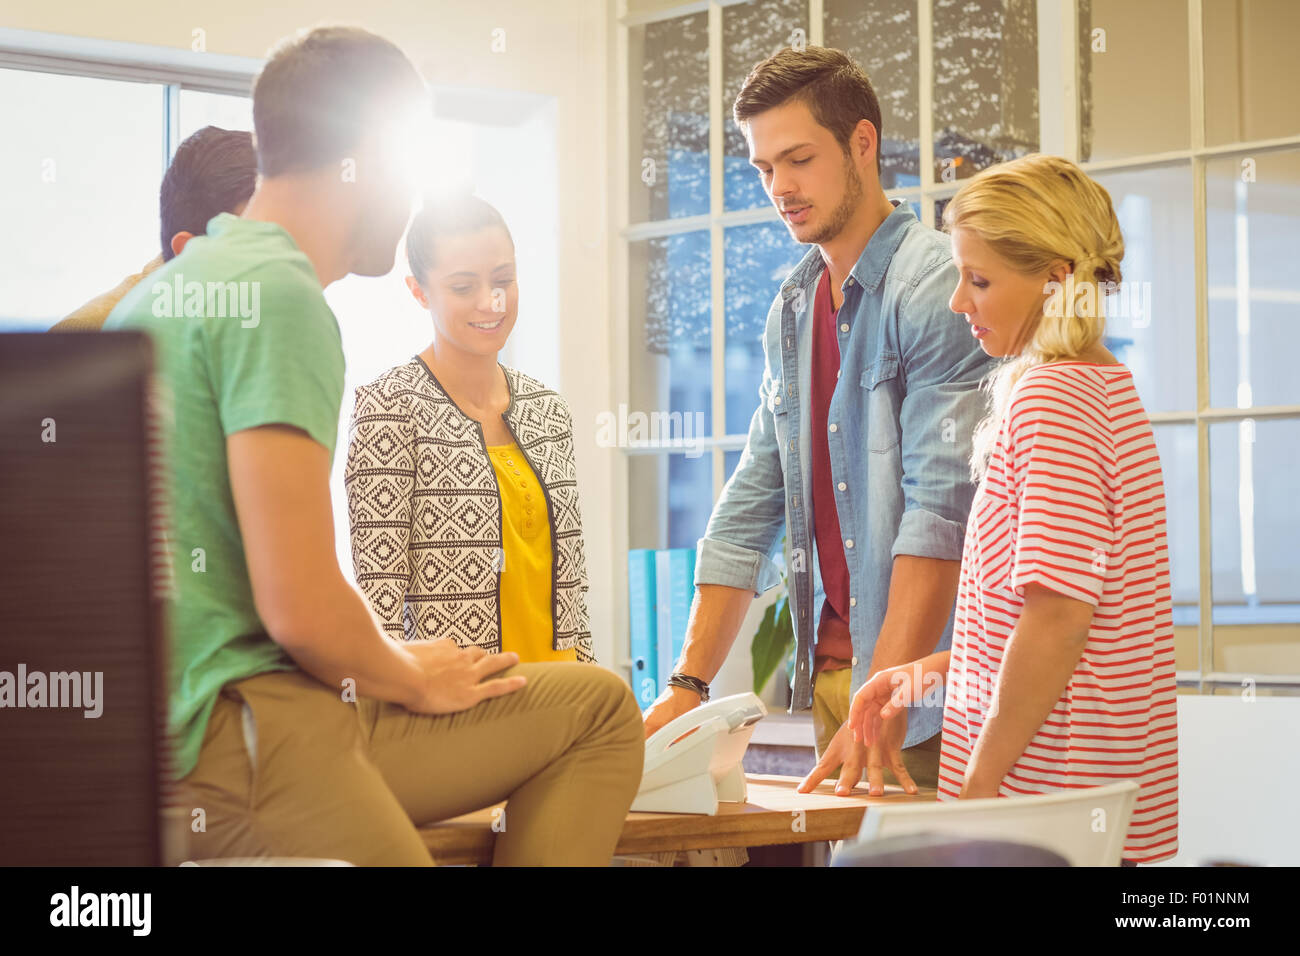 Casual business people speaking together - Stock Image